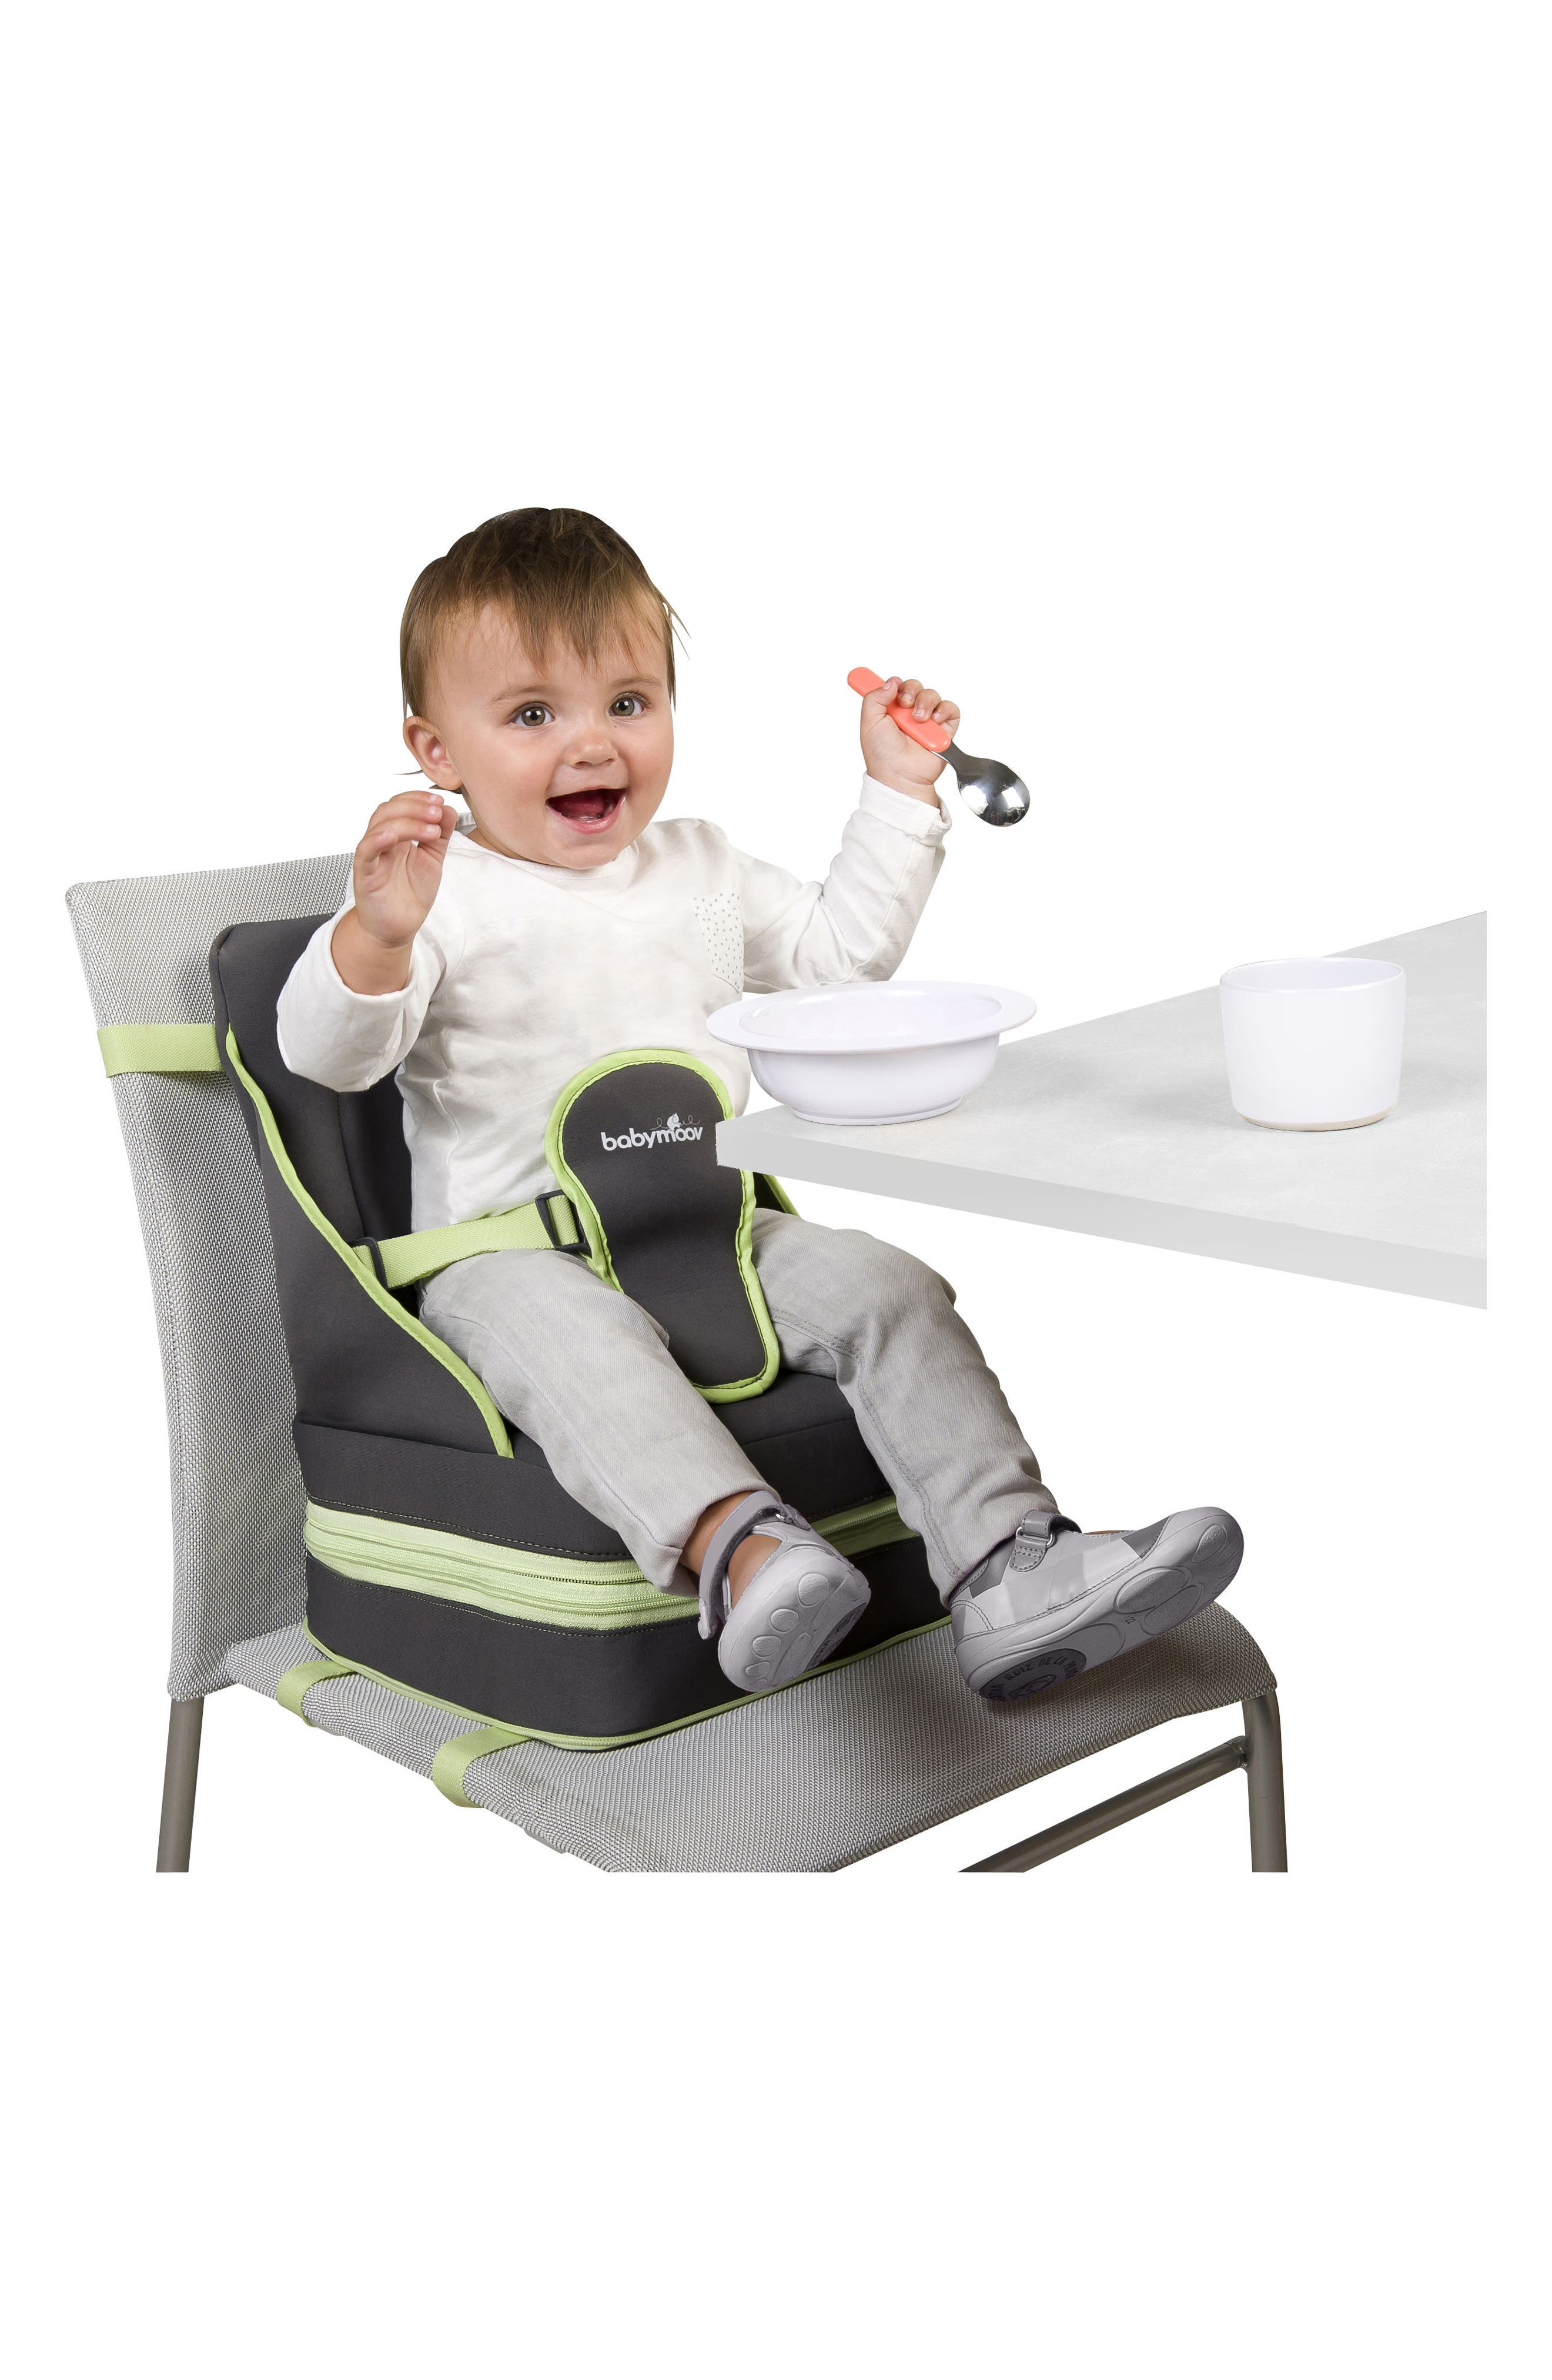 Up & Go Booster Seat,                             Alternate thumbnail 2, color,                             020